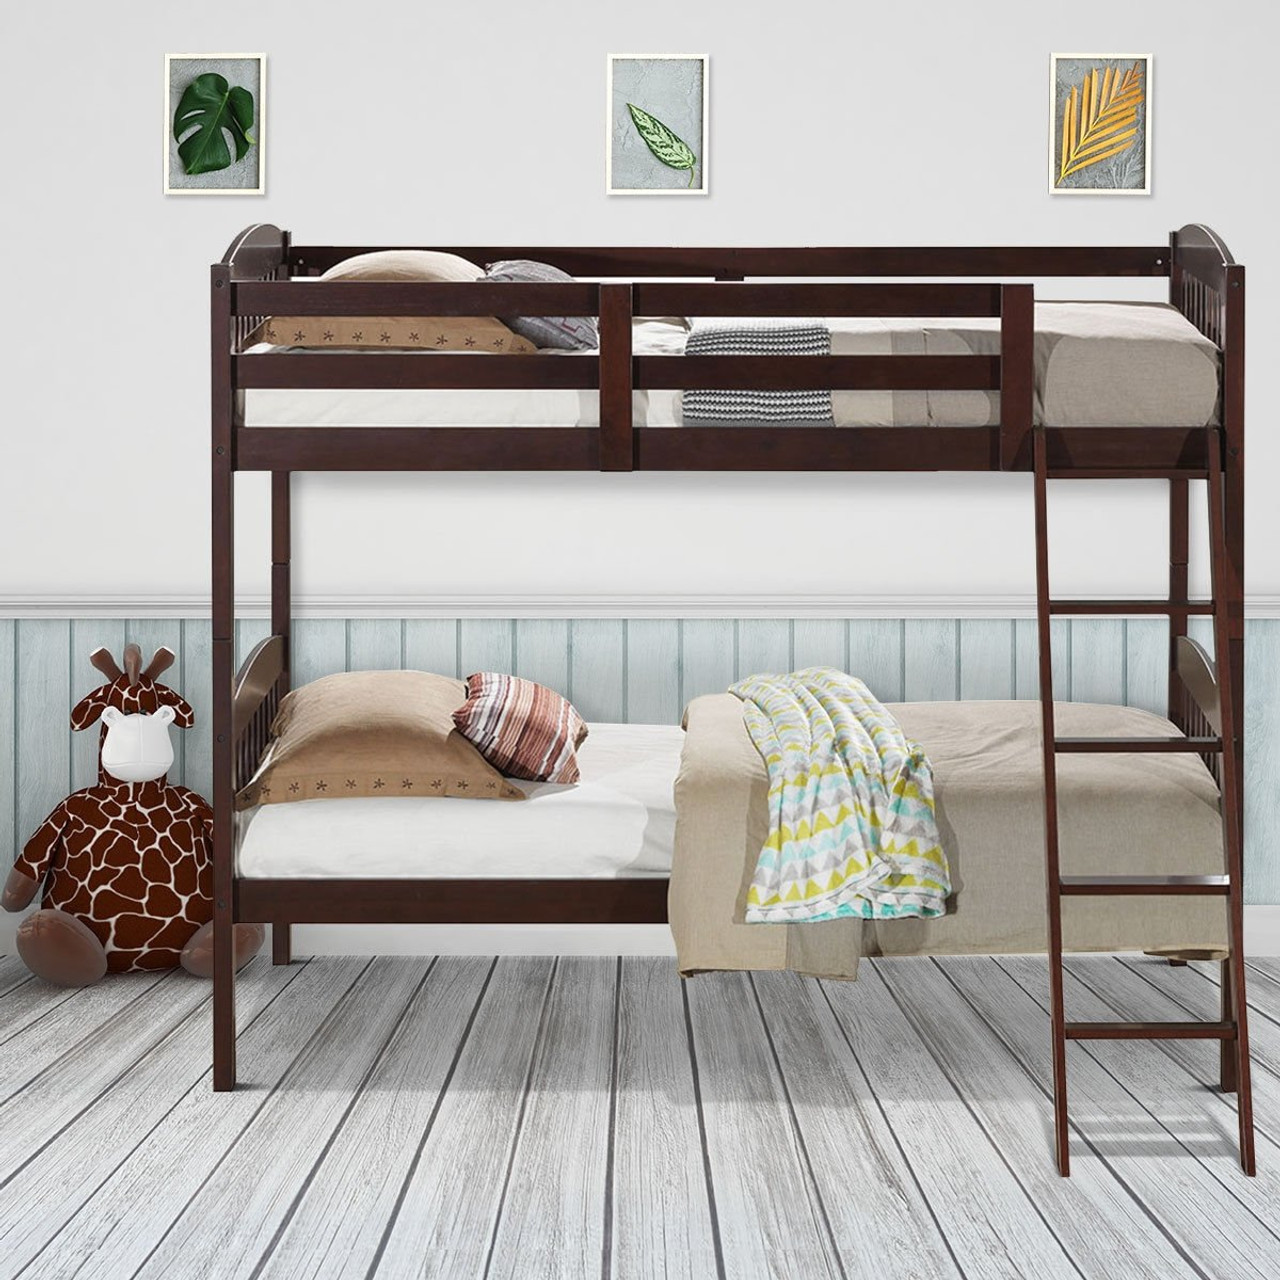 Solid Wood Twin Bunk Beds With Detachable Kids Ladder Hw58907 By Cw